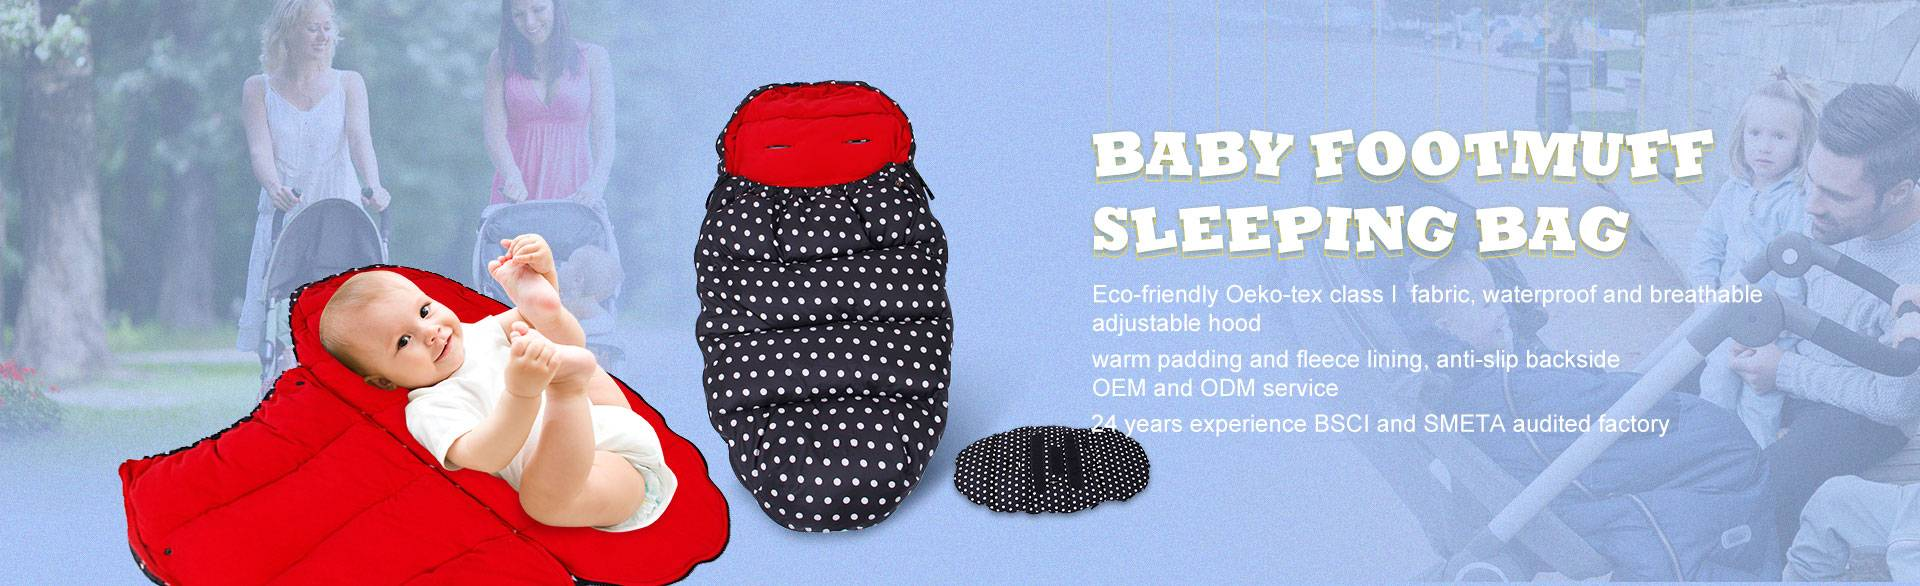 baby footmuff  sleeping bag